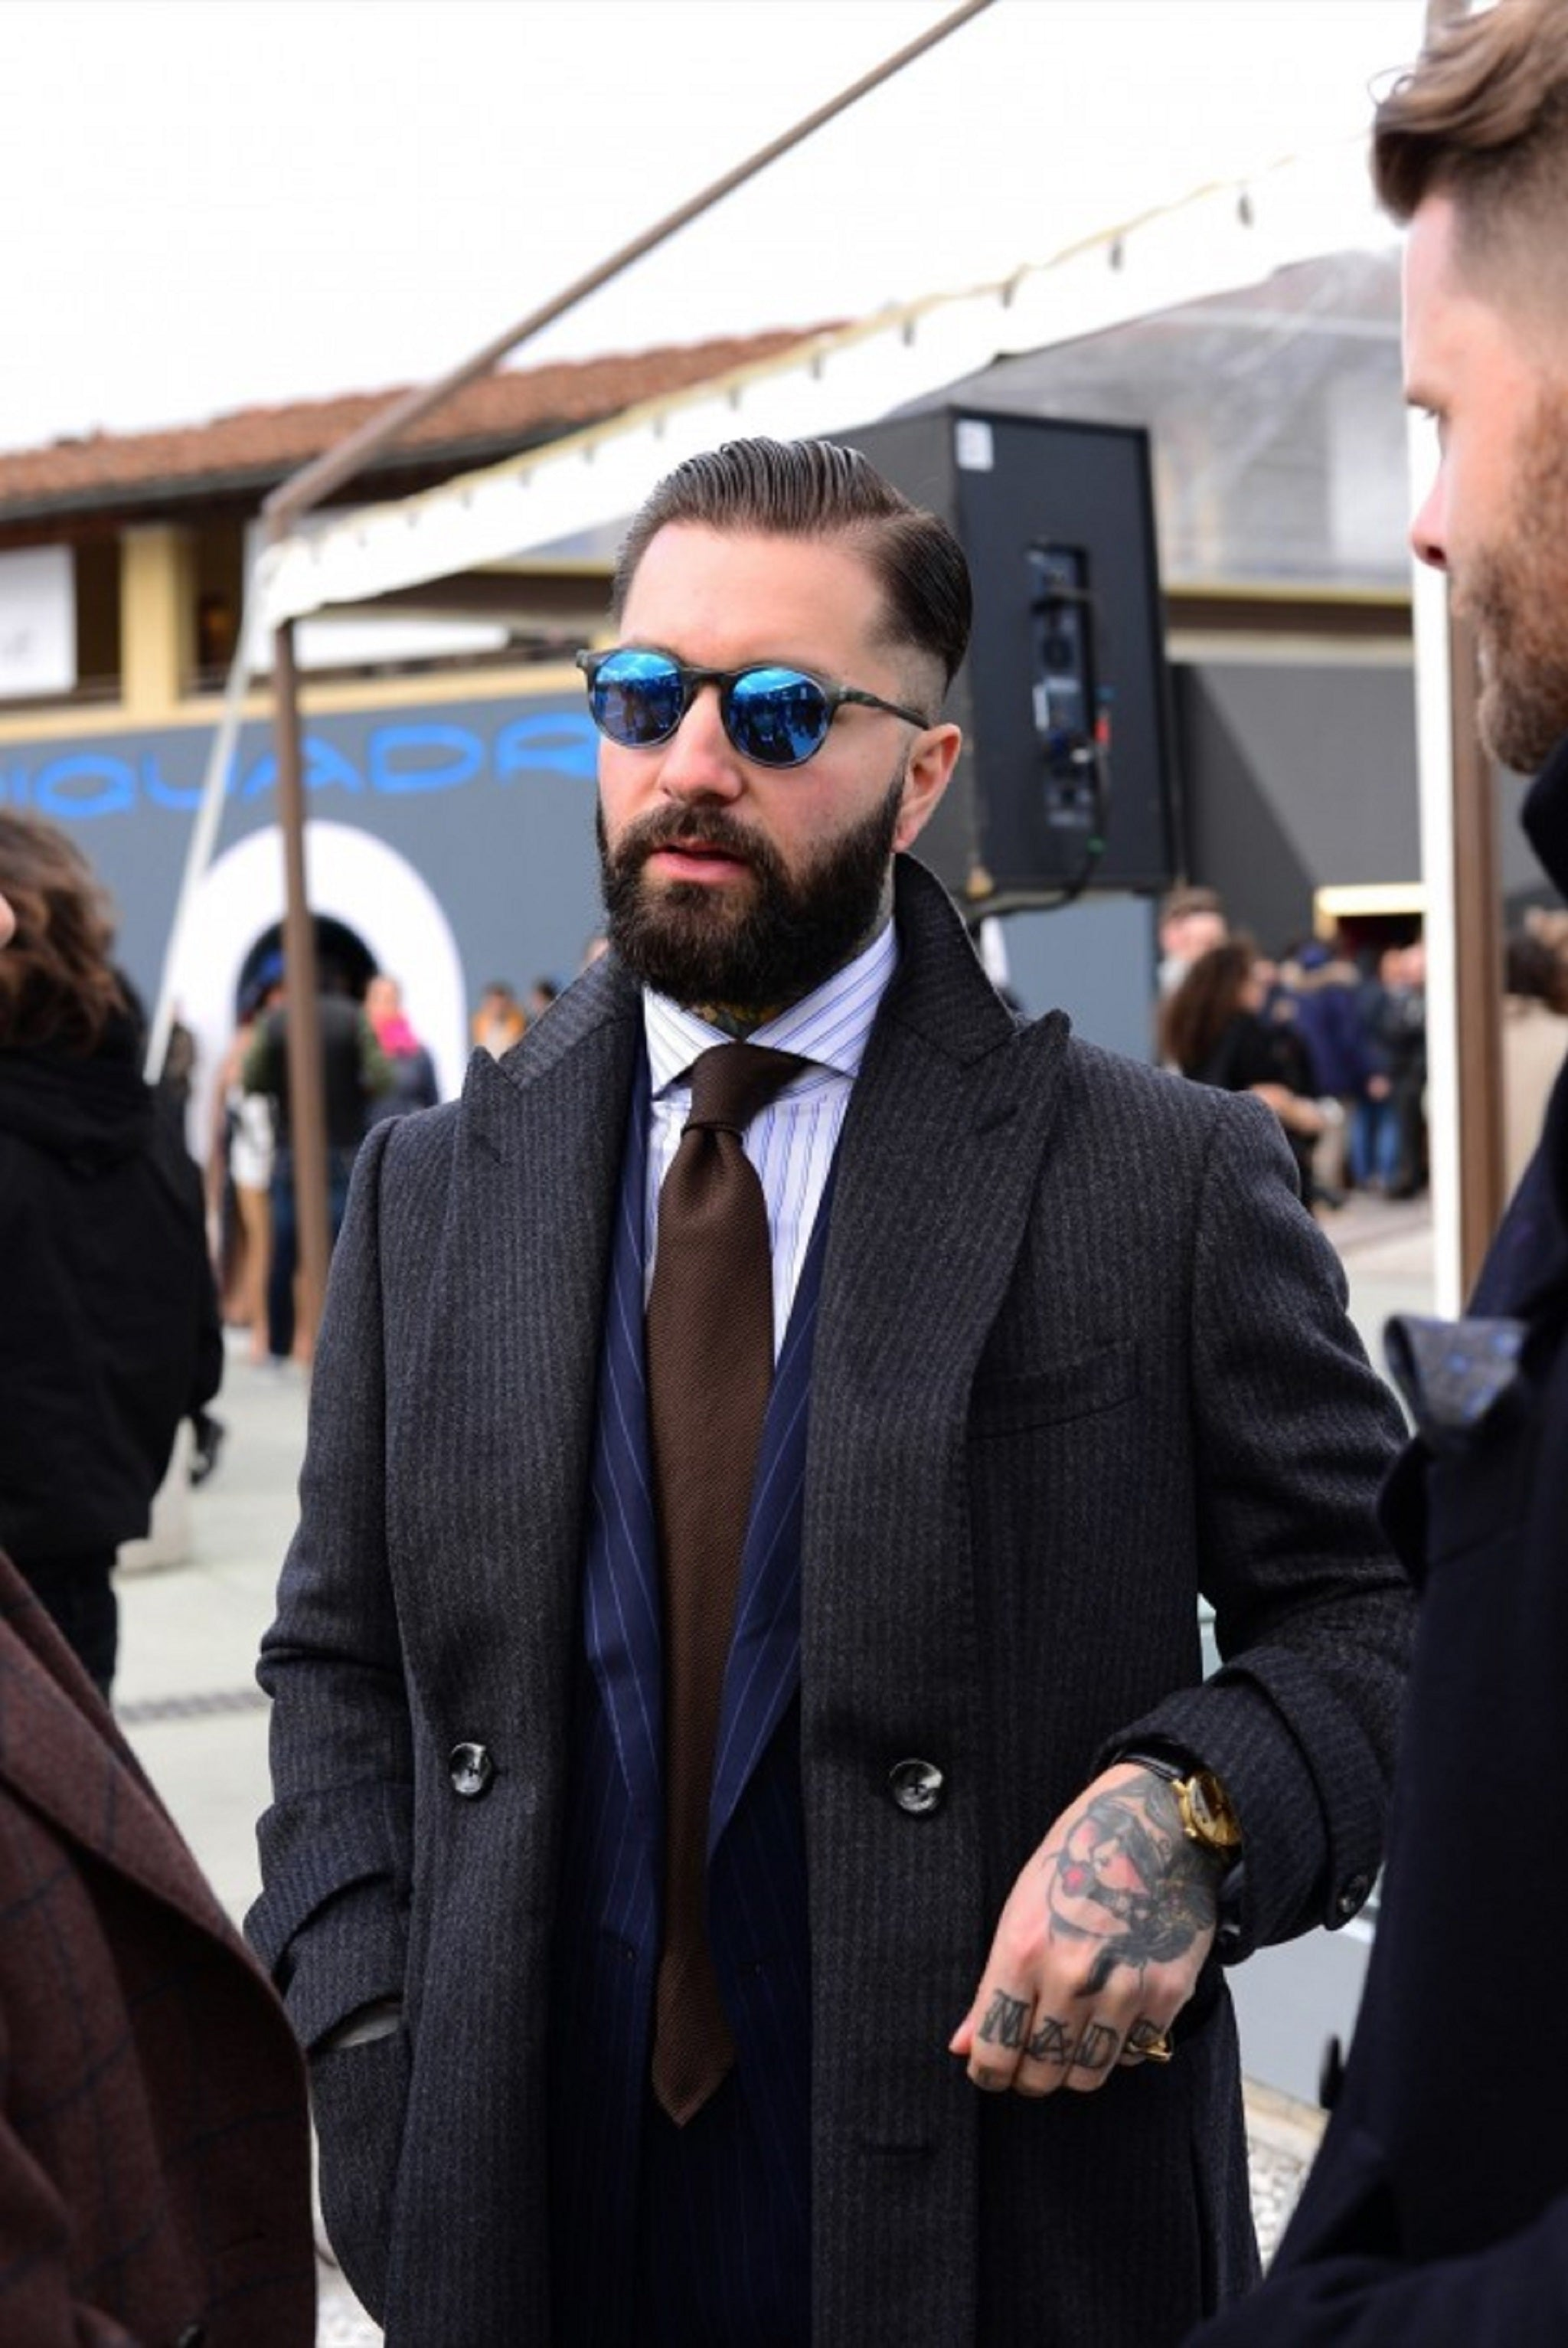 How to tie your tie - Pitti Uomo 89 - brown grenadine tie